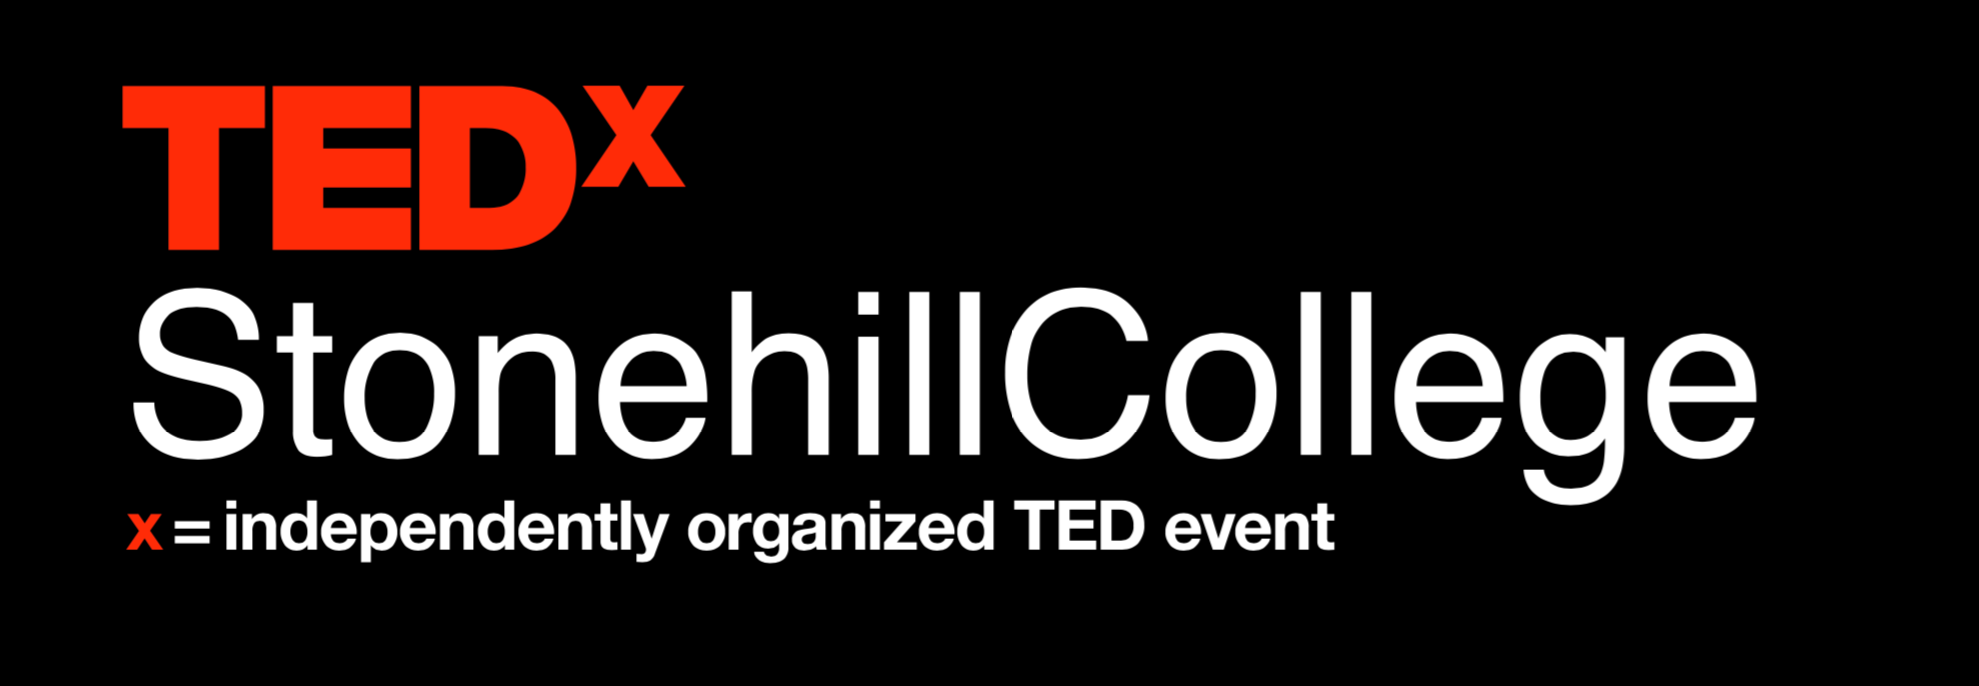 Image result for Tedx stonehill graduate program logo